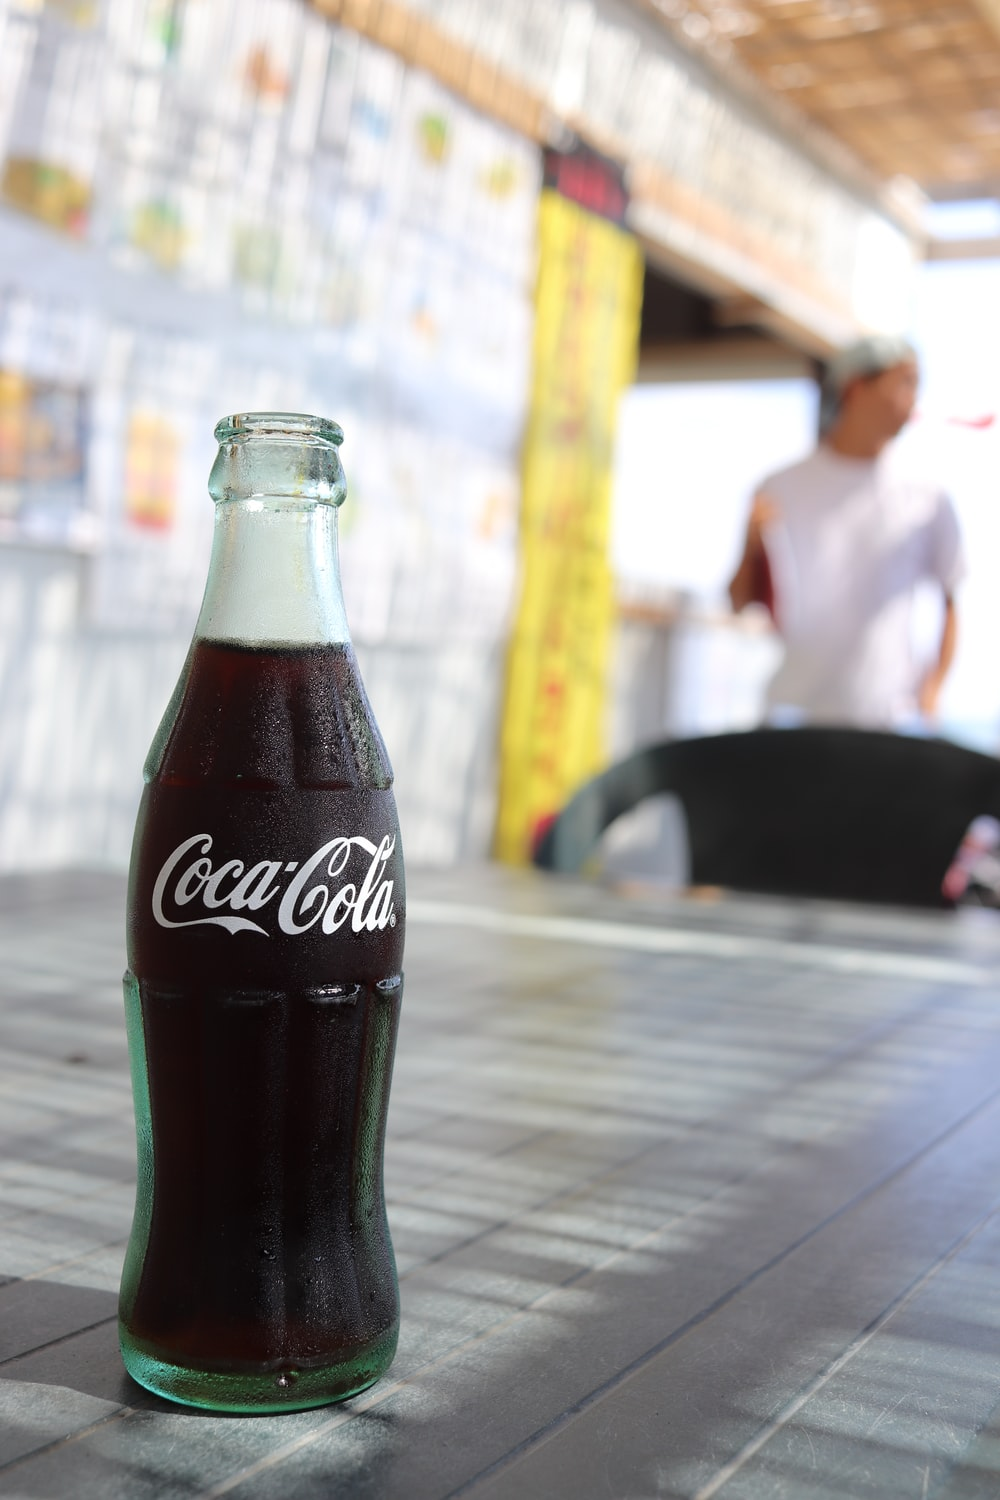 Coca-Cola bottle on table